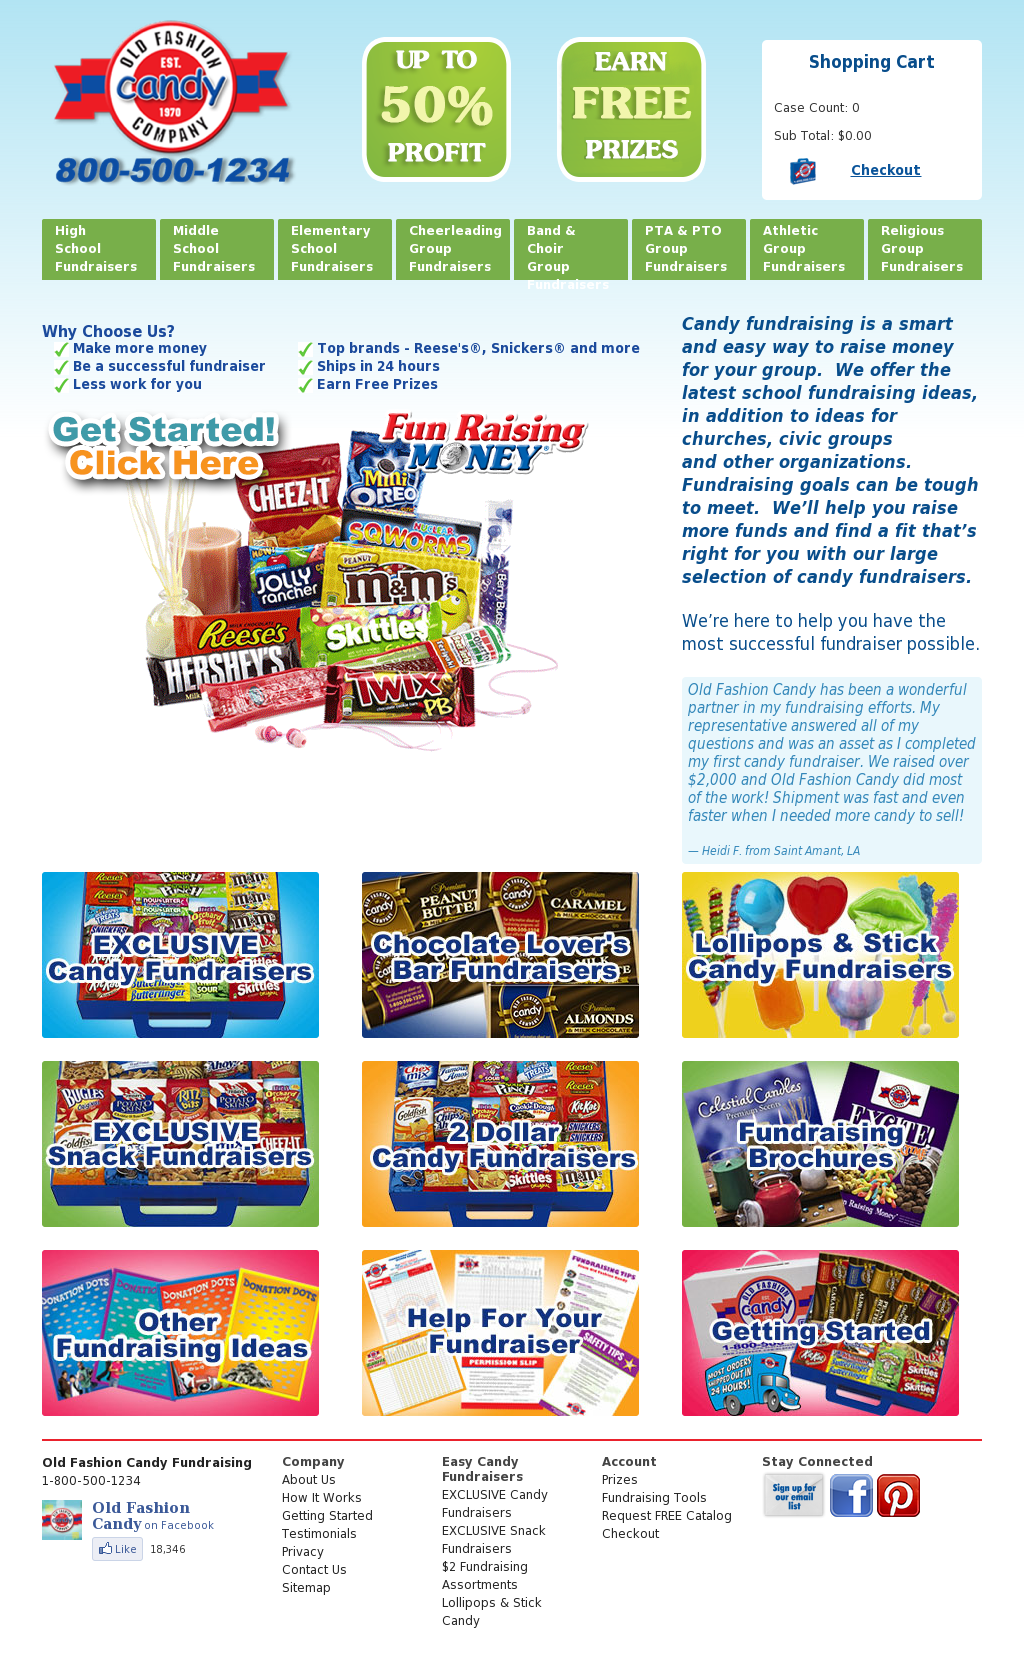 Easy Candy Fundraising : Candy ships in 24 Hours! Old fashion candy fundraiser